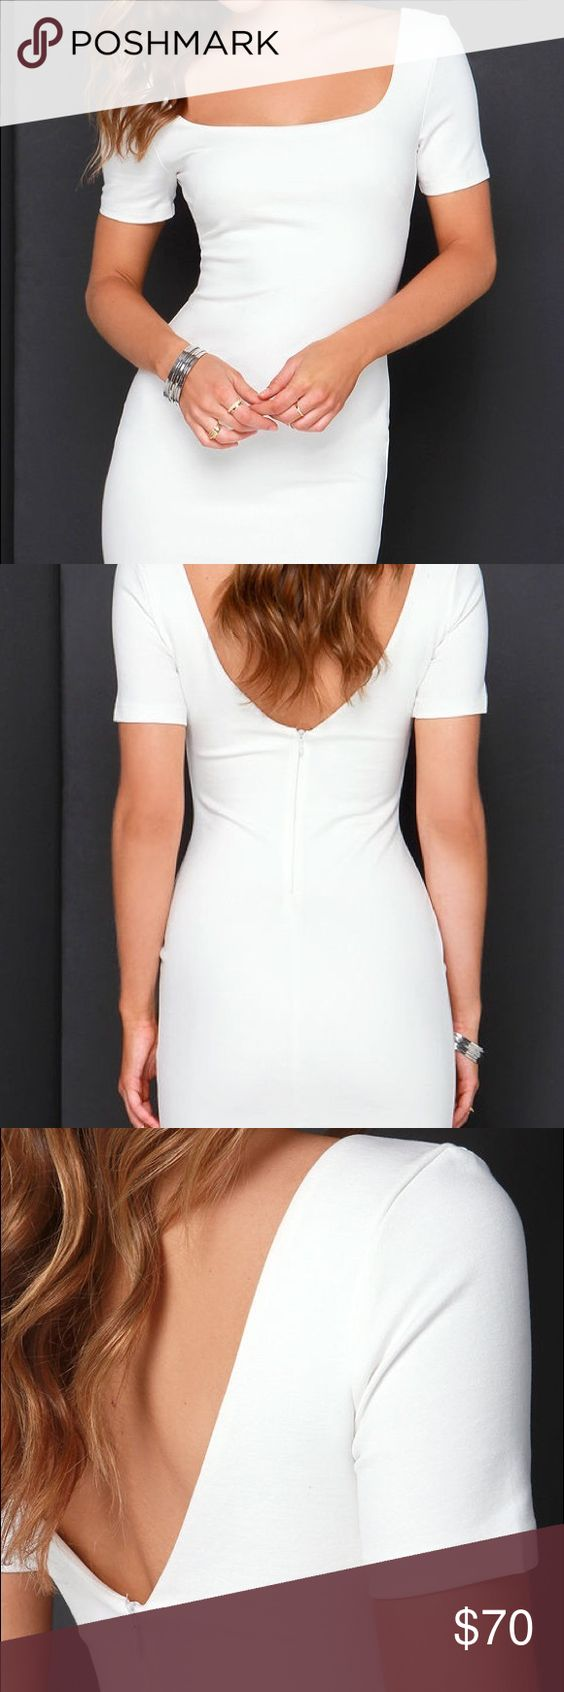 LuLu*s bodycon dress • white bodycon dress • brand new • snug fit, super sexy. Lulu's Dresses Mini